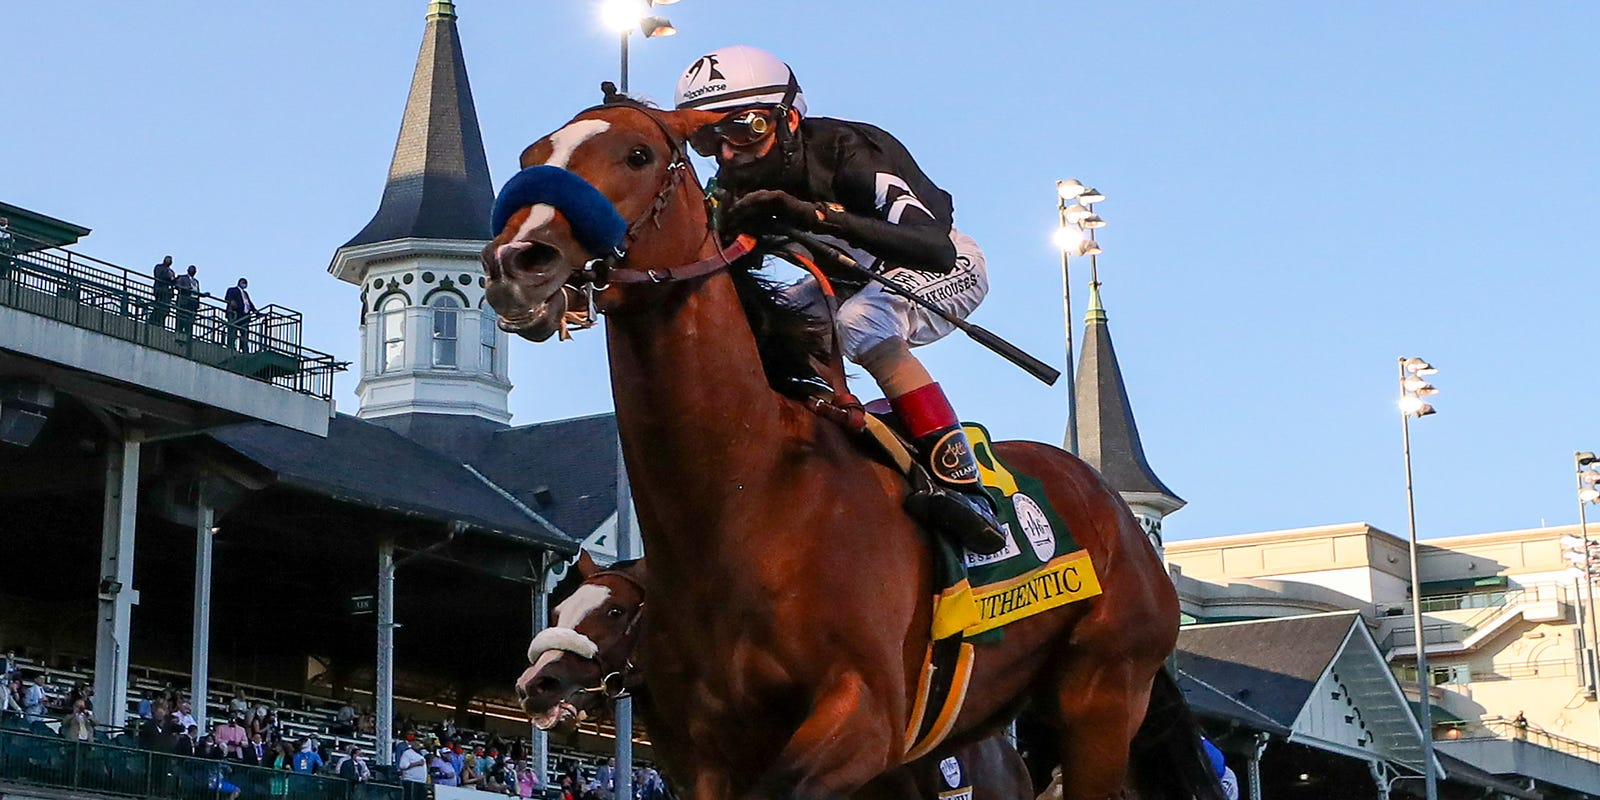 Free 25 Kentucky Derby betting tips from horse racing experts